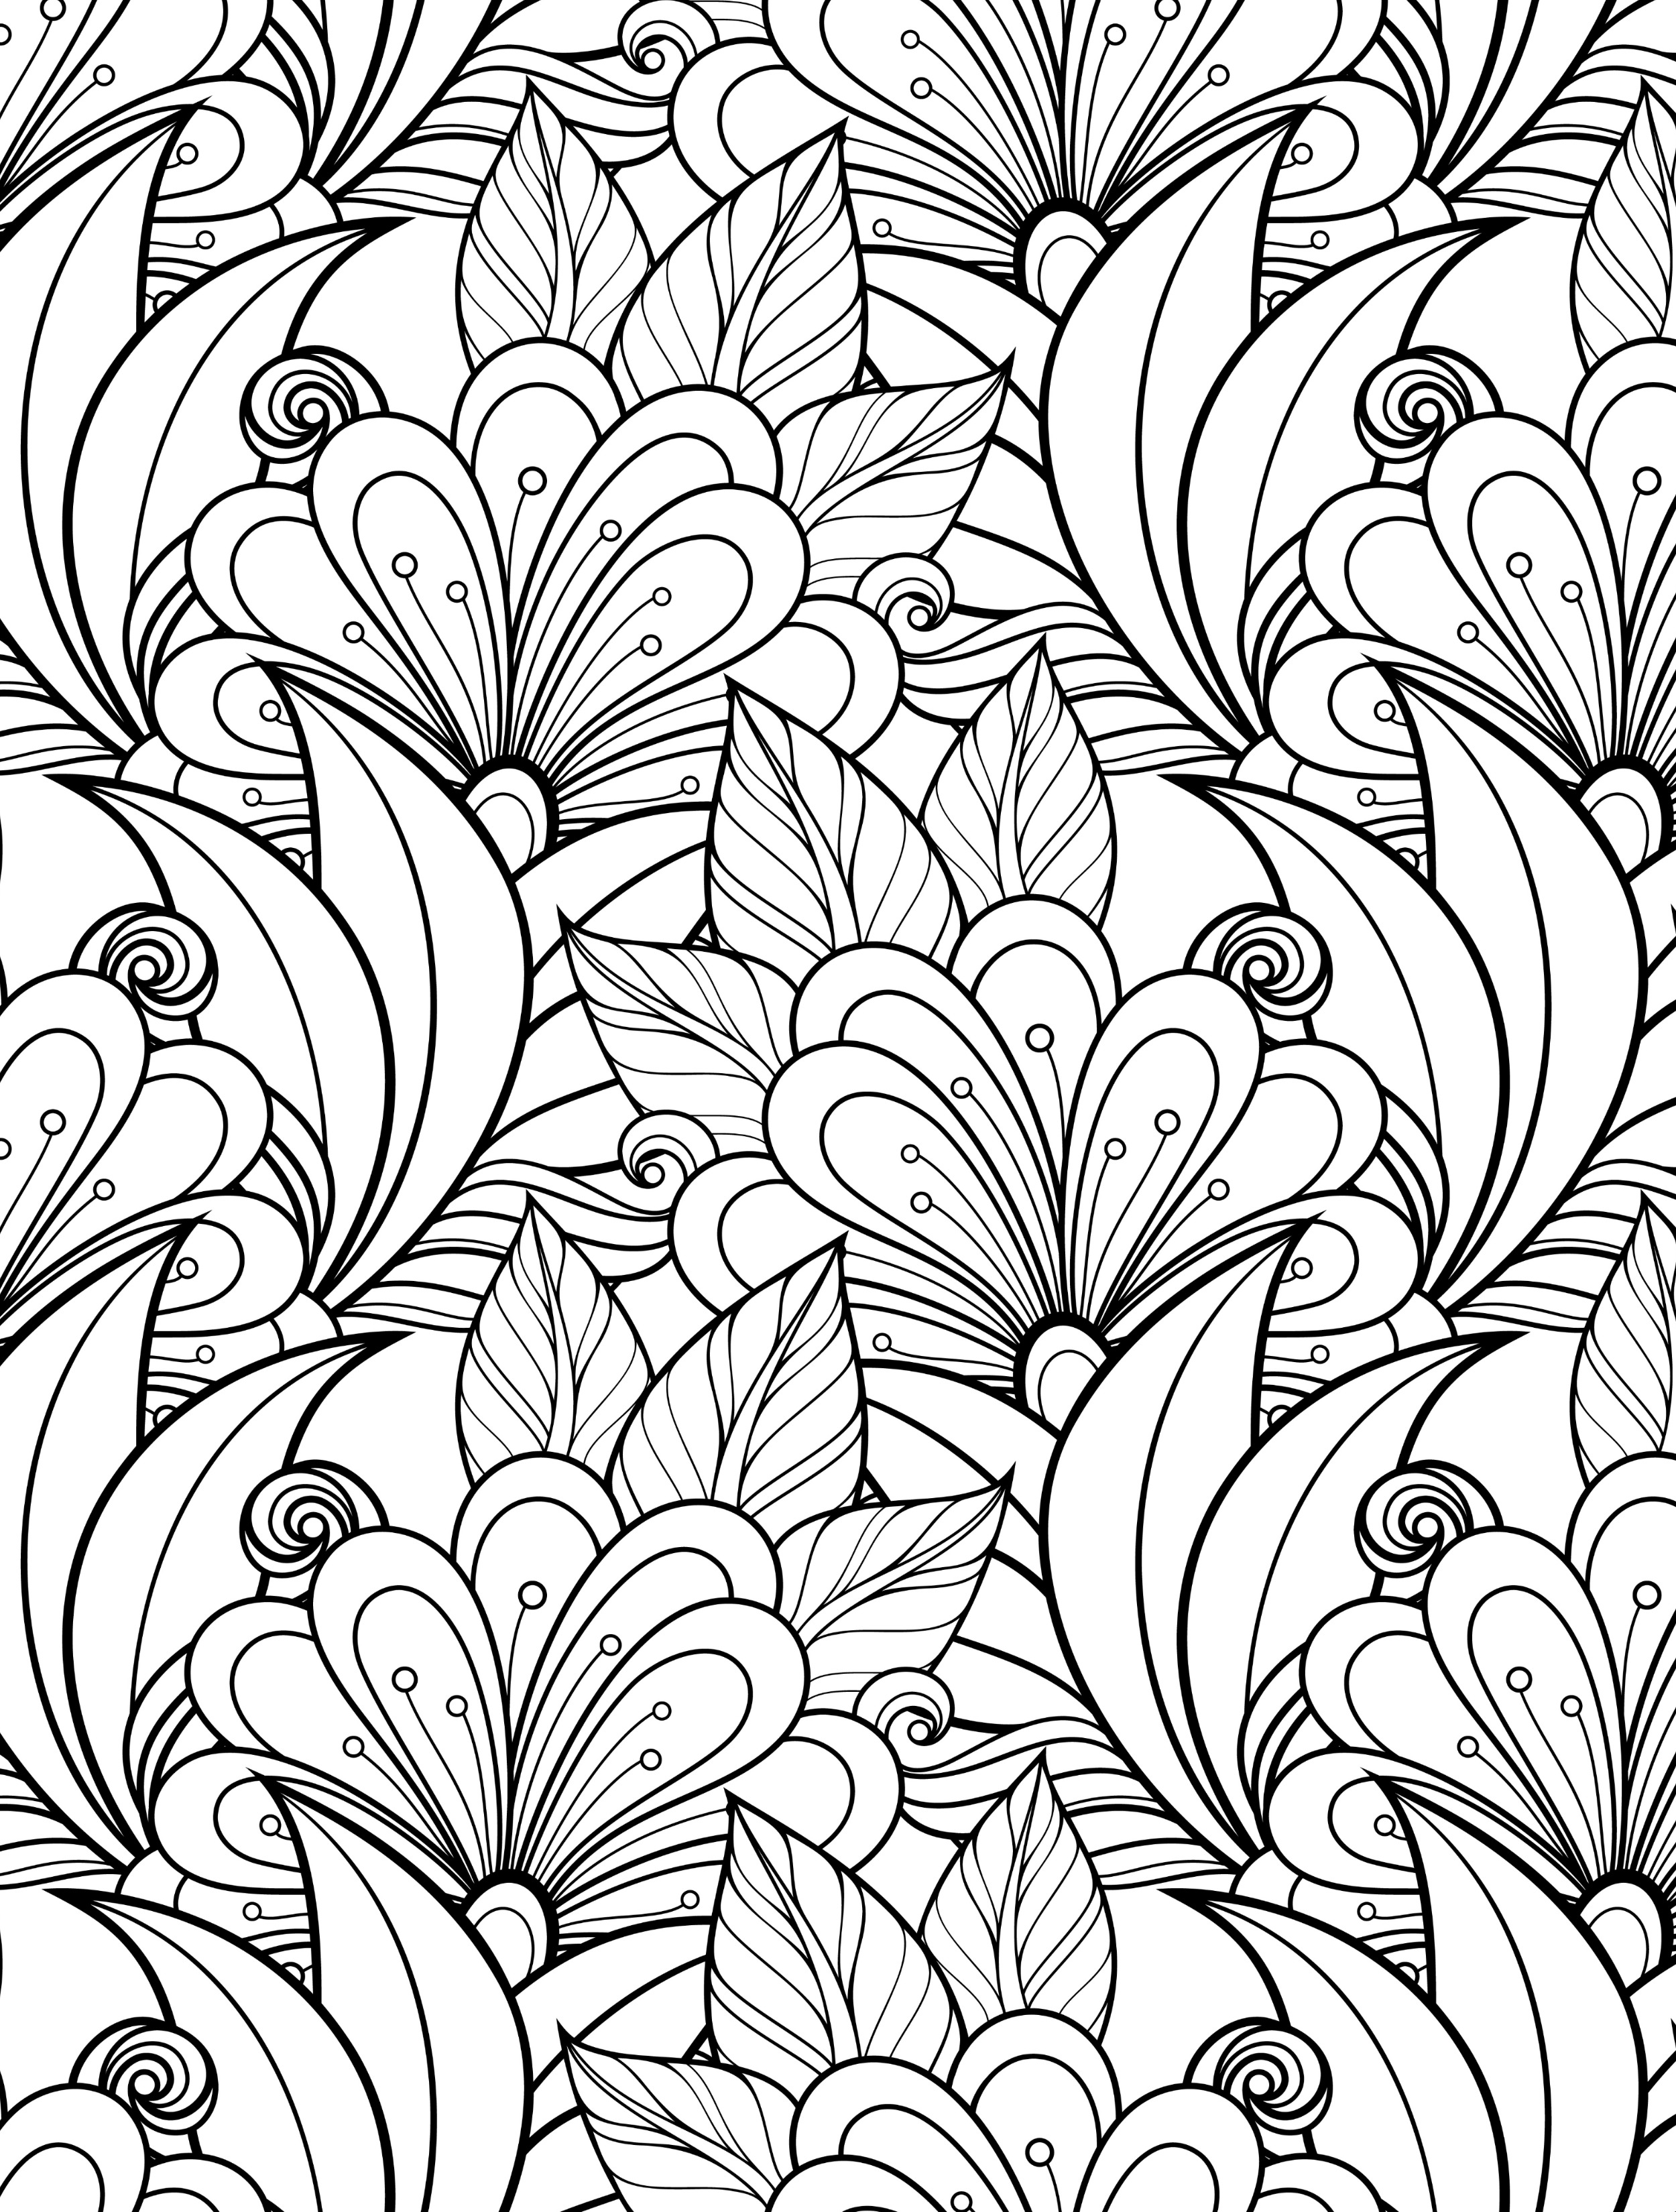 pattern colouring pages to print free printable geometric coloring pages for kids pages to print colouring pattern